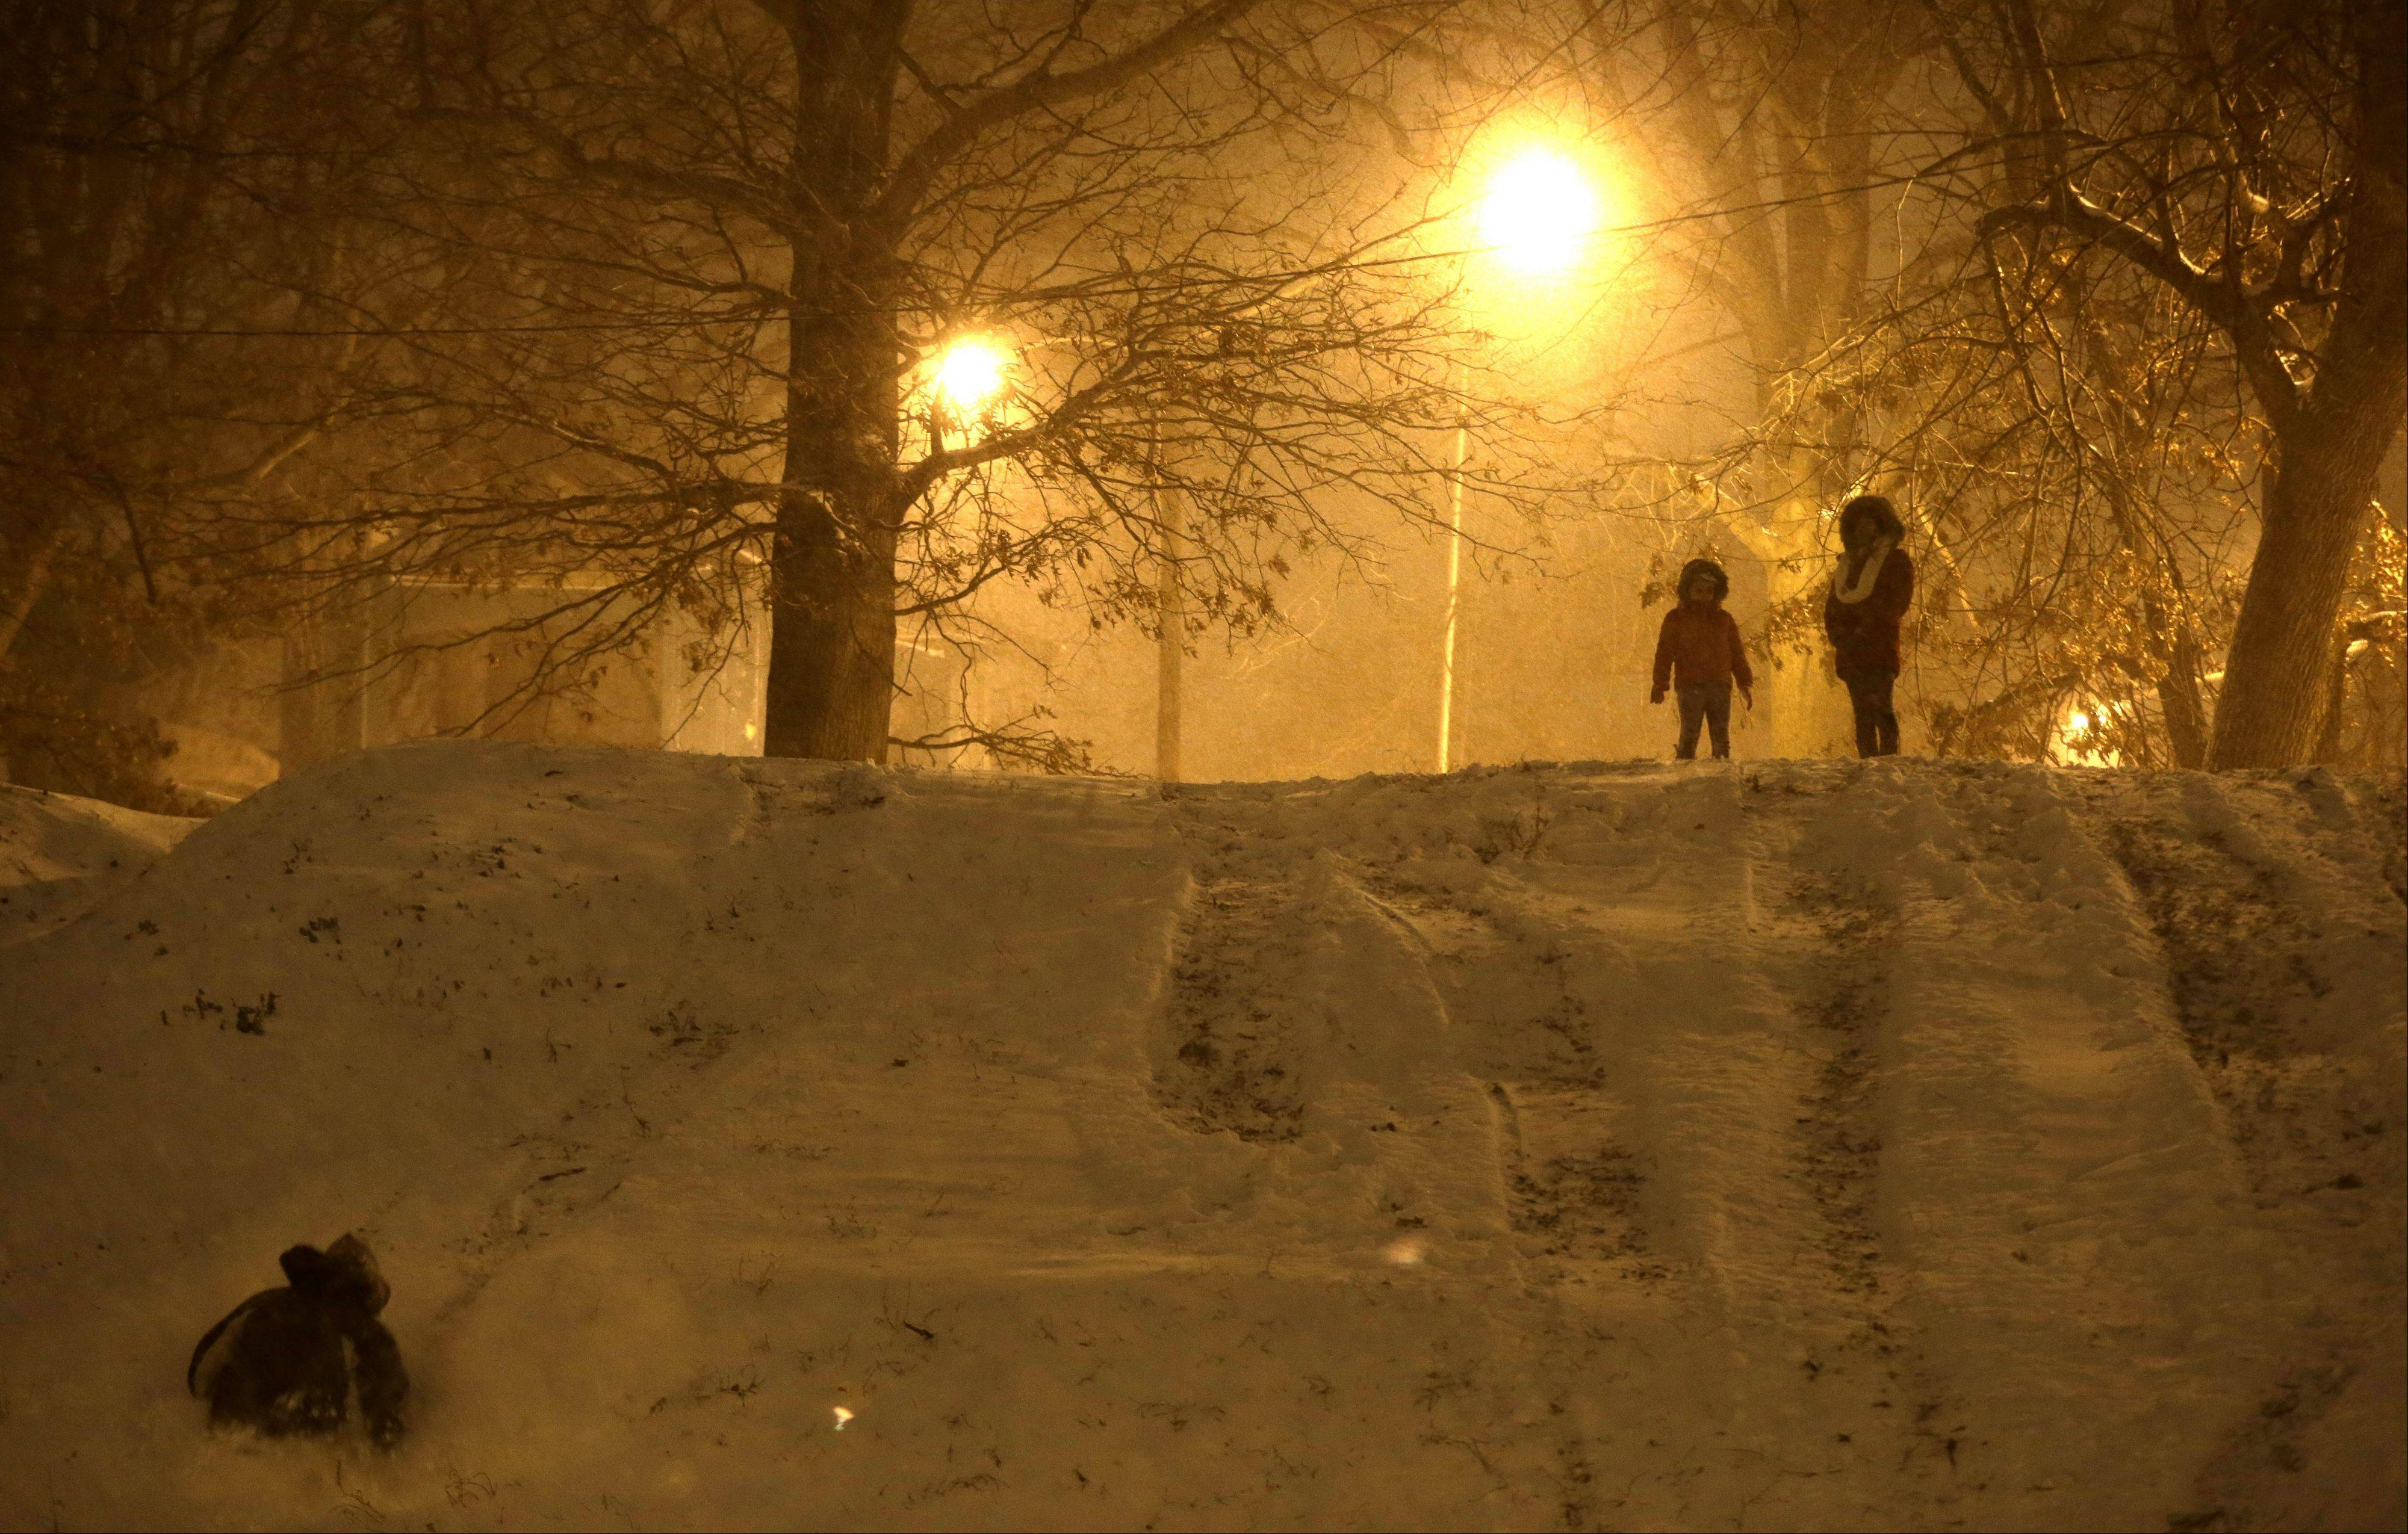 A boy, left, sleds down the hill as others look on during a late night snowfall at Leonard Gordon Park, Thursday, Jan. 2, 2014, in Jersey City, N.J. Snow and bone-chilling temperatures are expected for the overnight hours with substantial accumulation predicted.